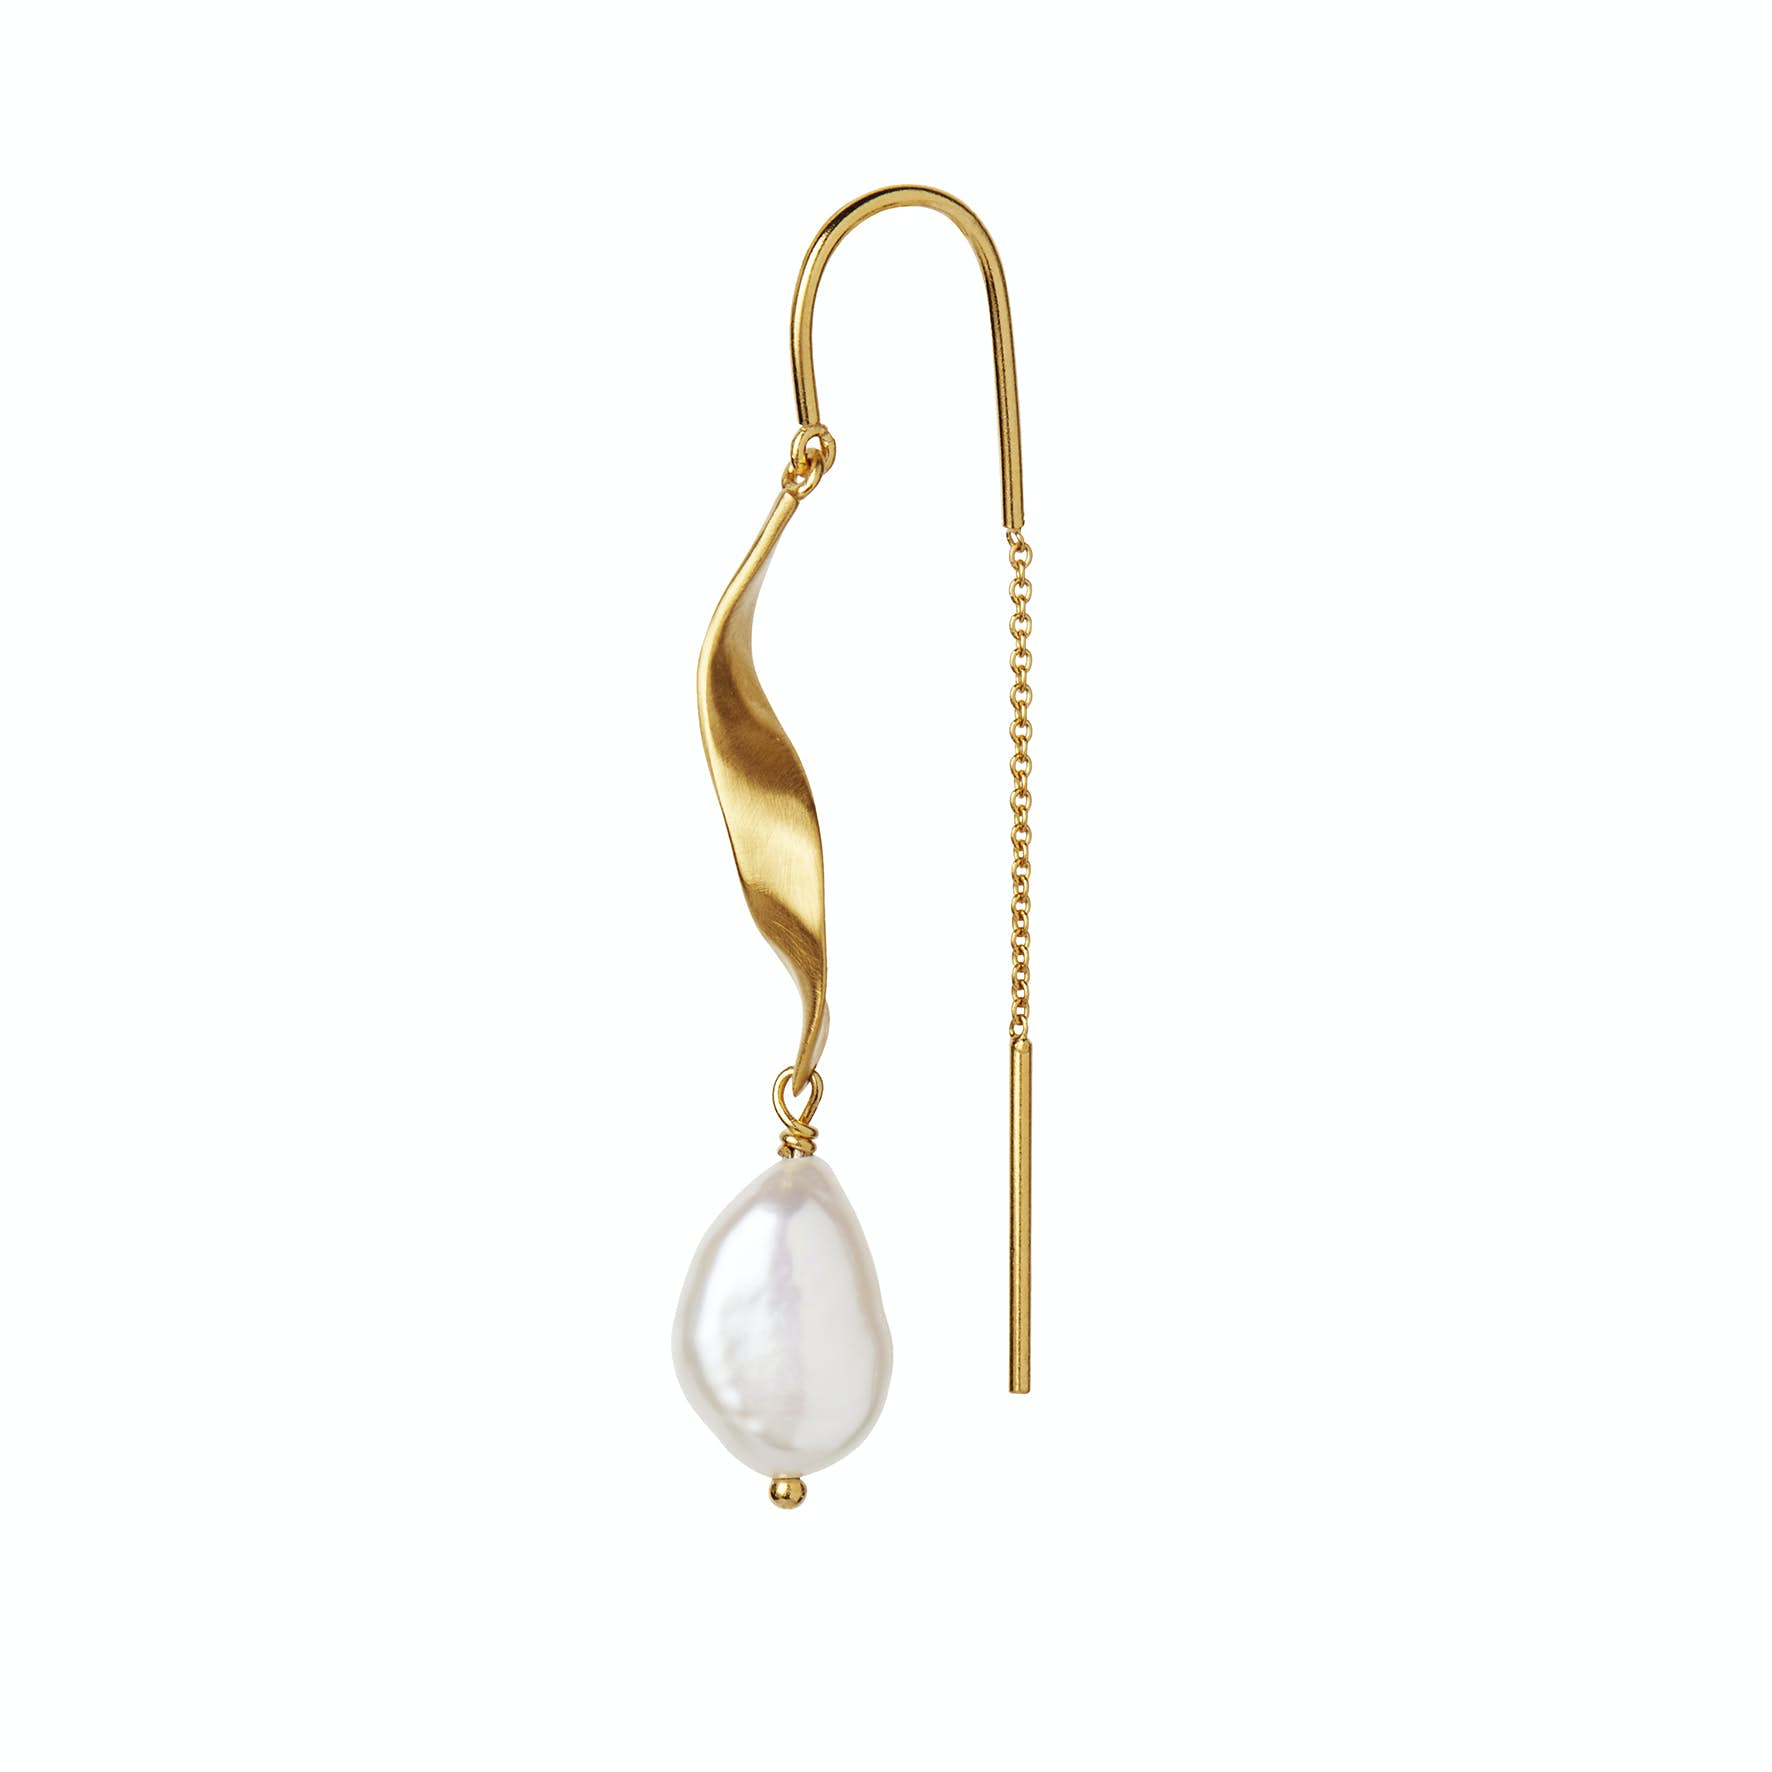 Long Twisted Earring With Baroque Pearl från STINE A Jewelry i Förgyllt-Silver Sterling 925